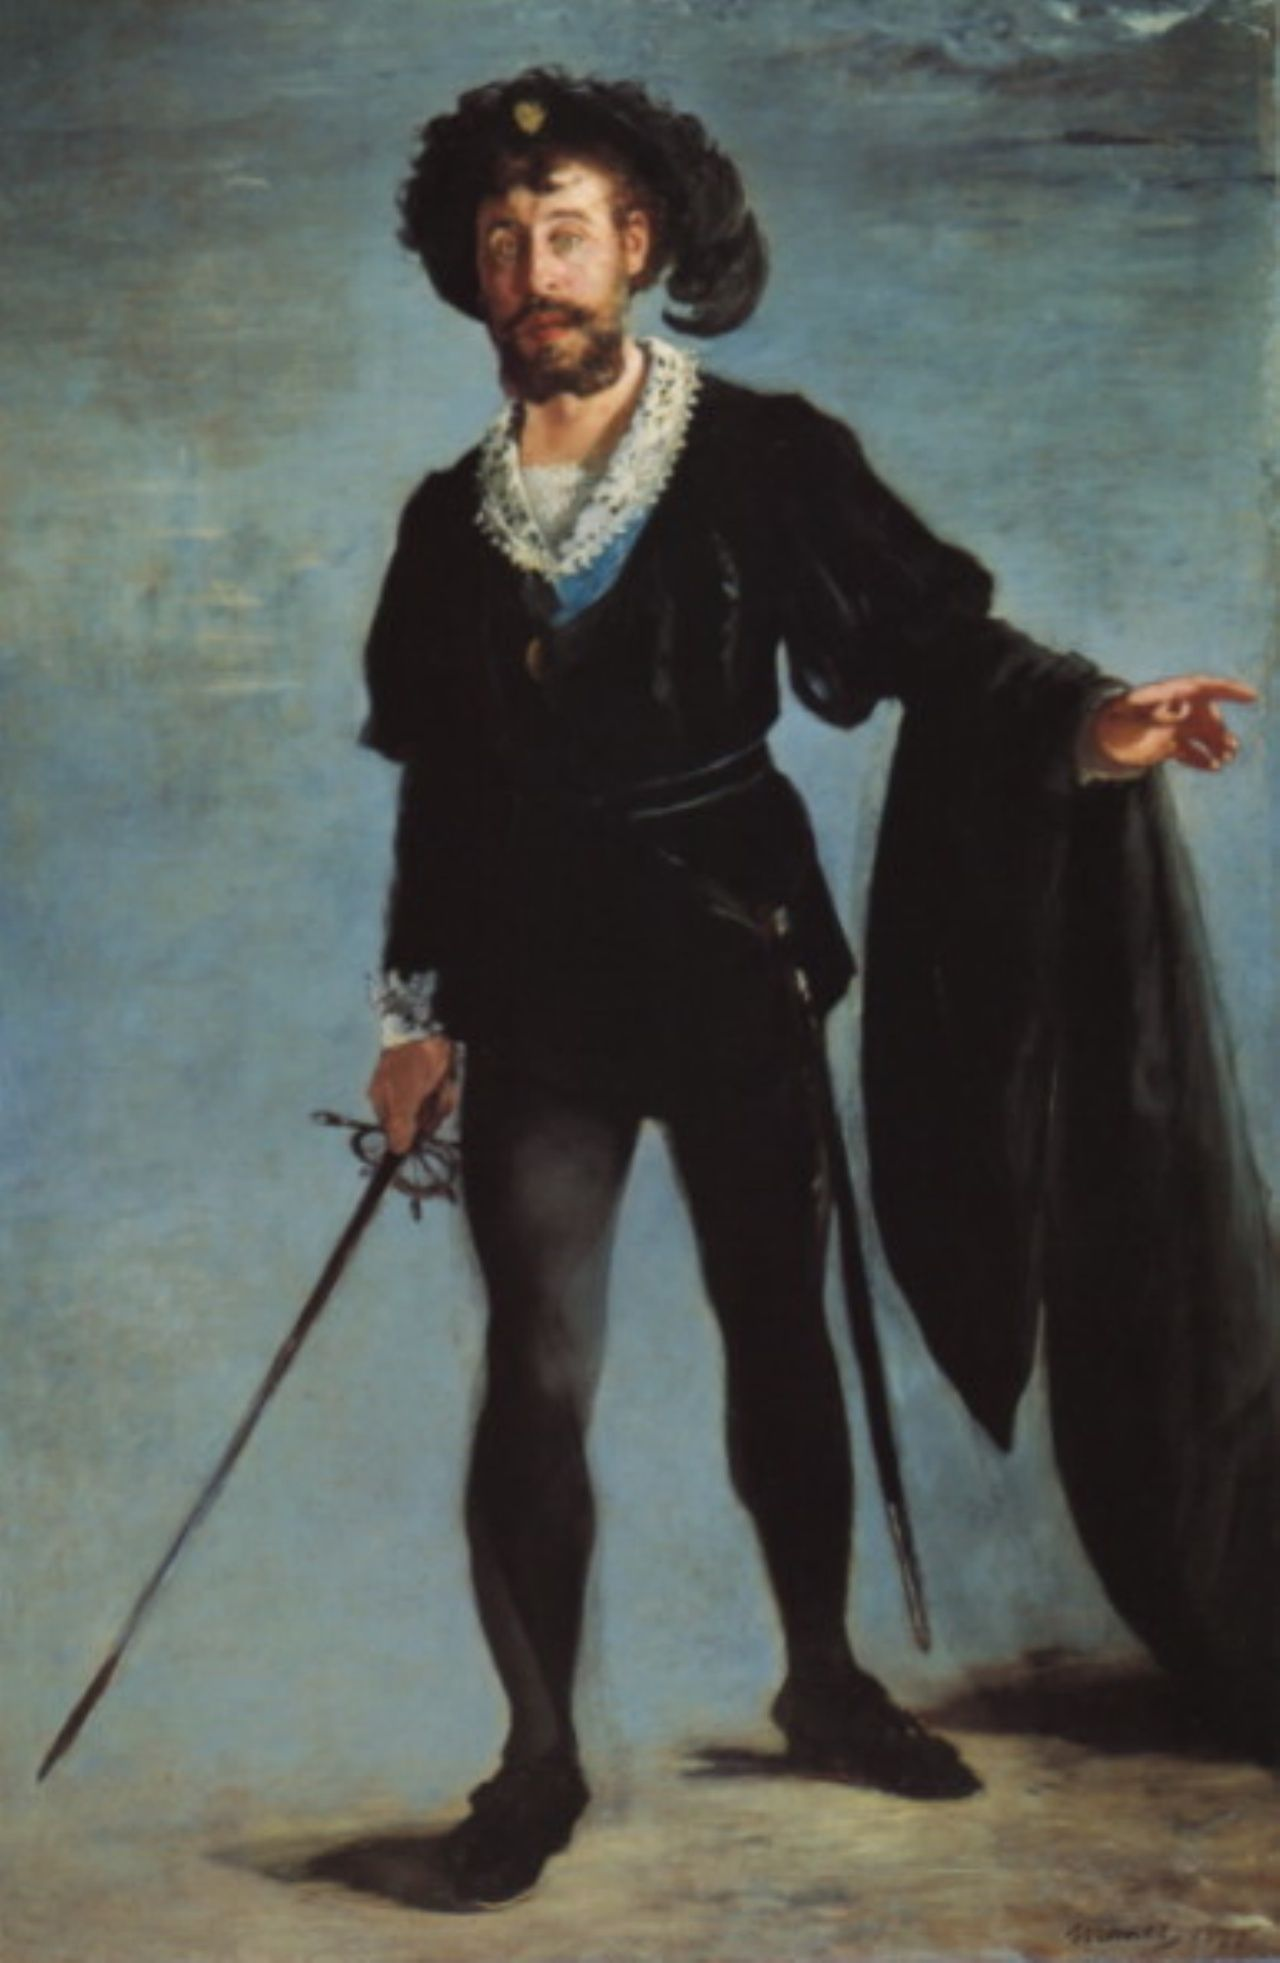 Édouard Manet (French Impressionist painter, 1832–1883) Jean-Baptiste Faure as Hamlet, 1877. Oil on canvas, 194 x 131.5 cm. Museum Folkwang, Essen, Germany.